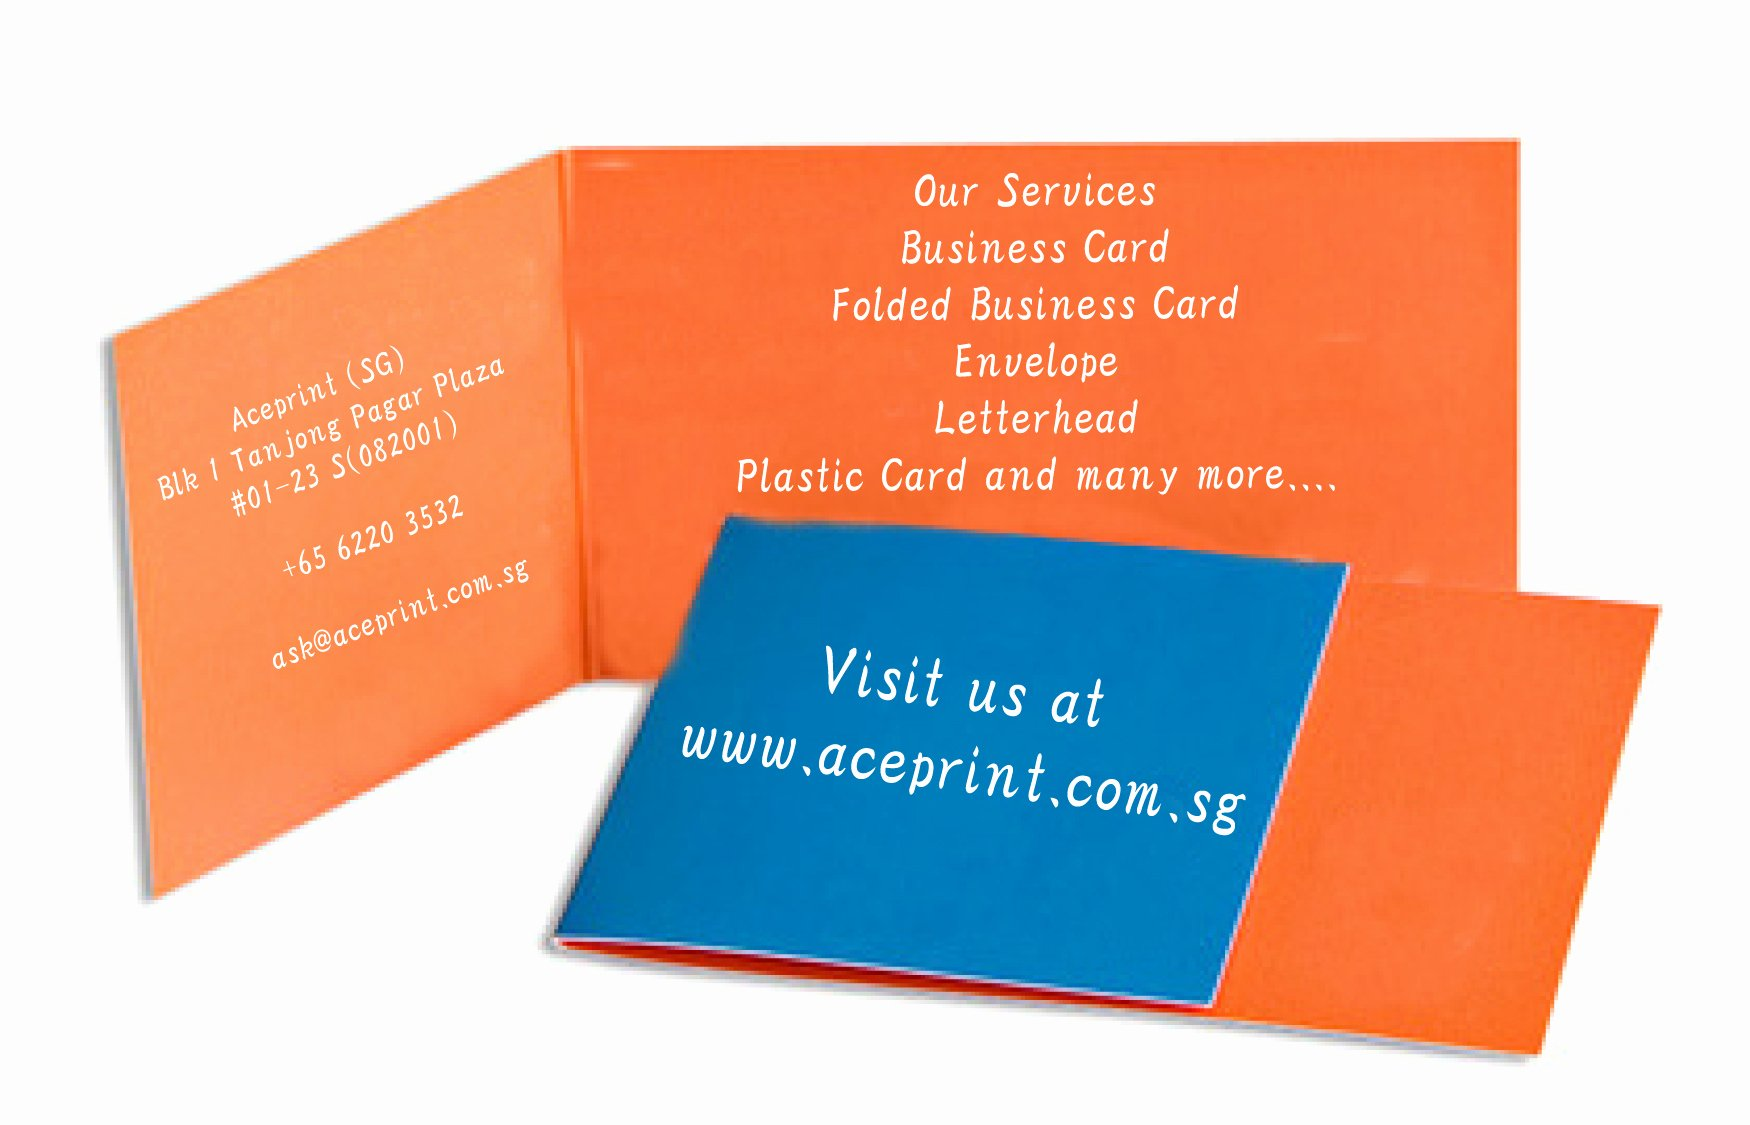 Folded Business Cards Template Luxury Singapore Printing Service Aceprint